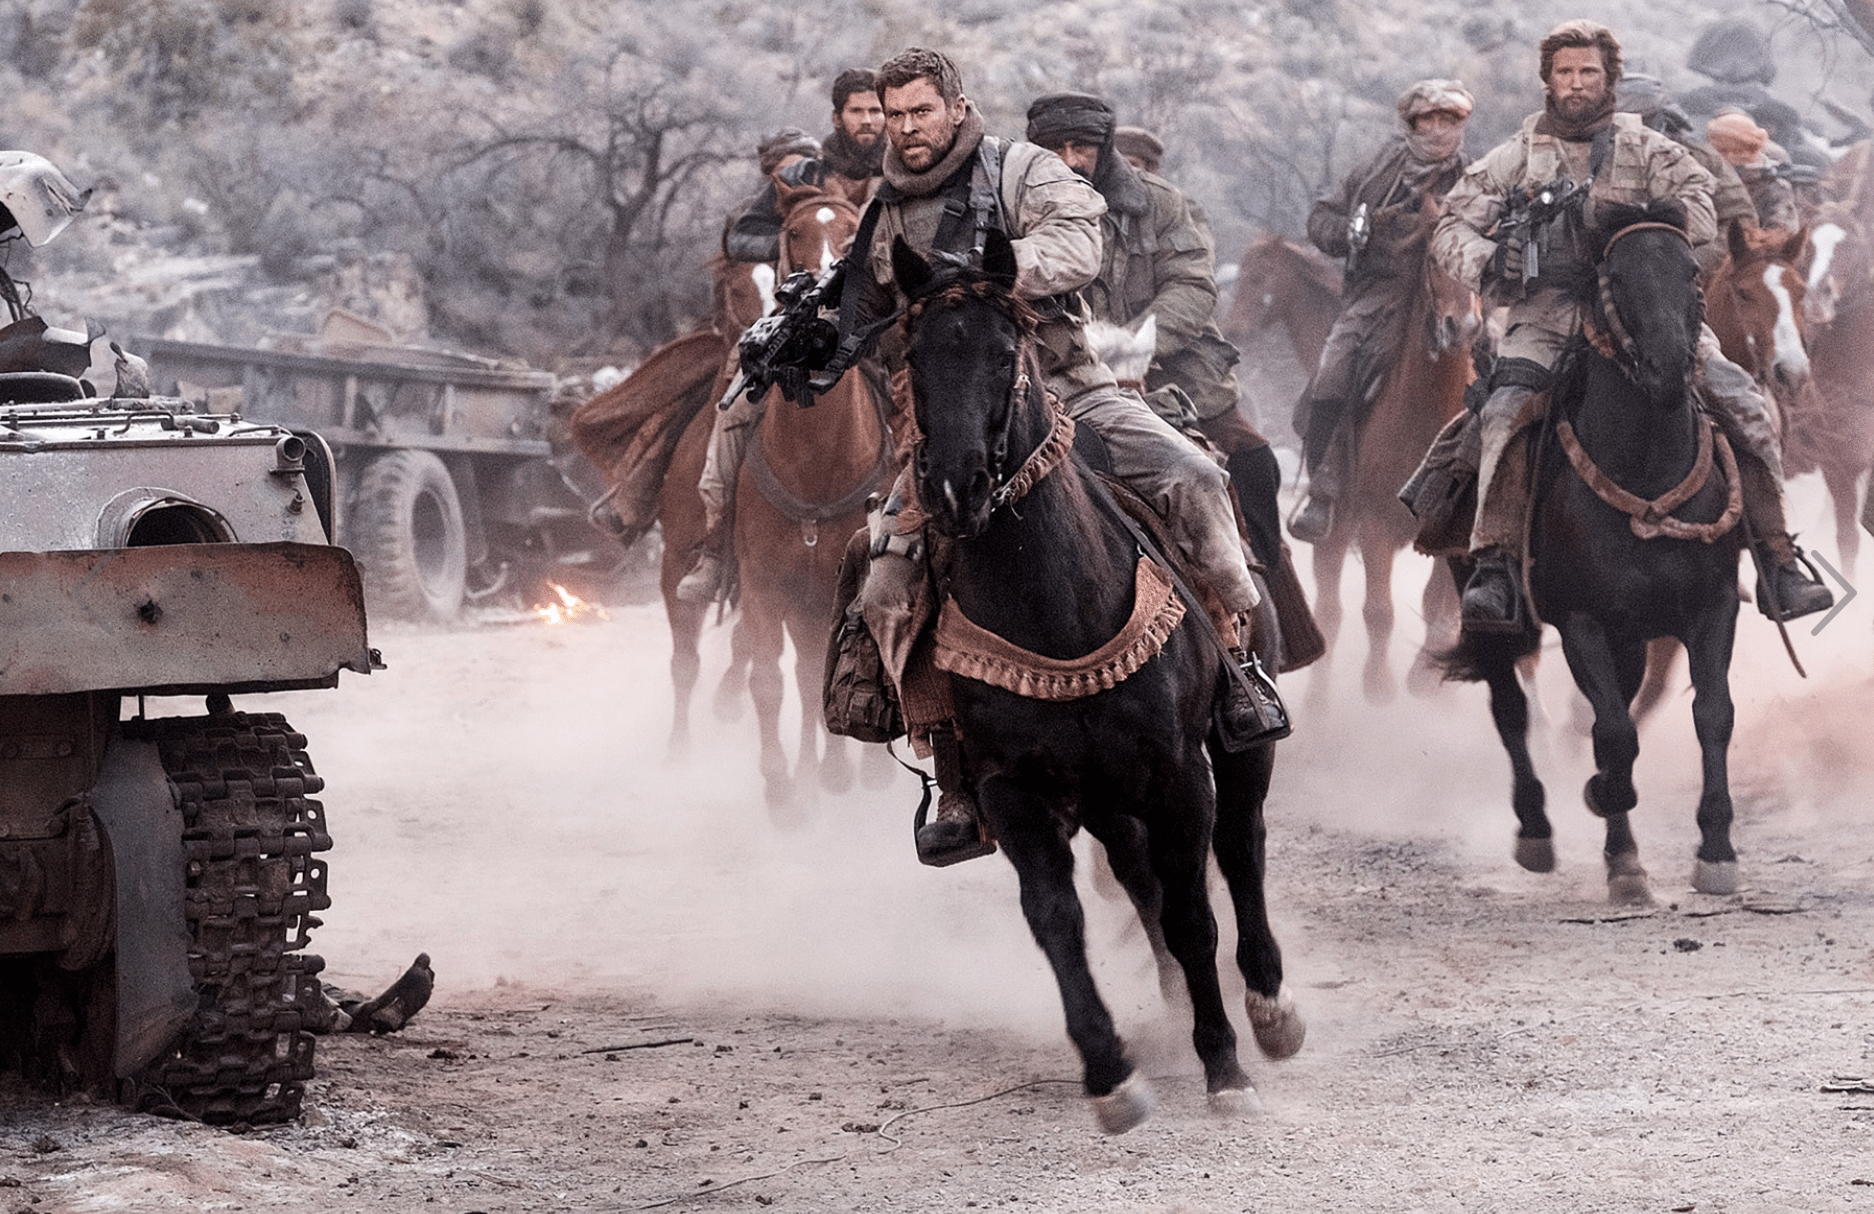 12 Strong Movie Review | A Tribute To Real-Life Warriors - simplytodaylife.com